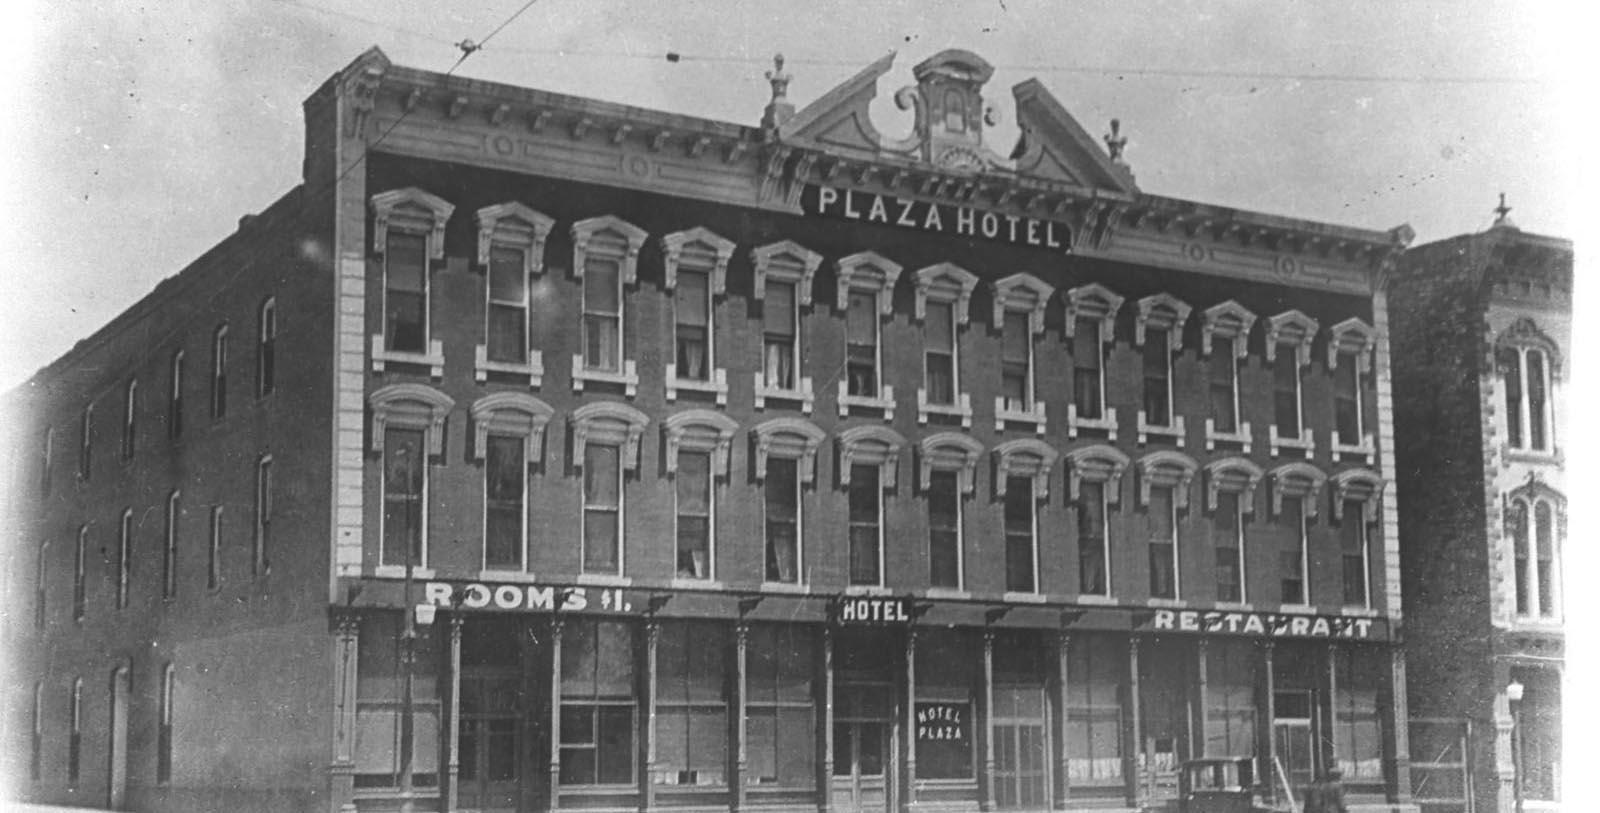 Historic Exterior Image Plaza Hotel 1882, 1882, Member of Historic Hotels of America, in Las Vegas, New Mexico, Discover